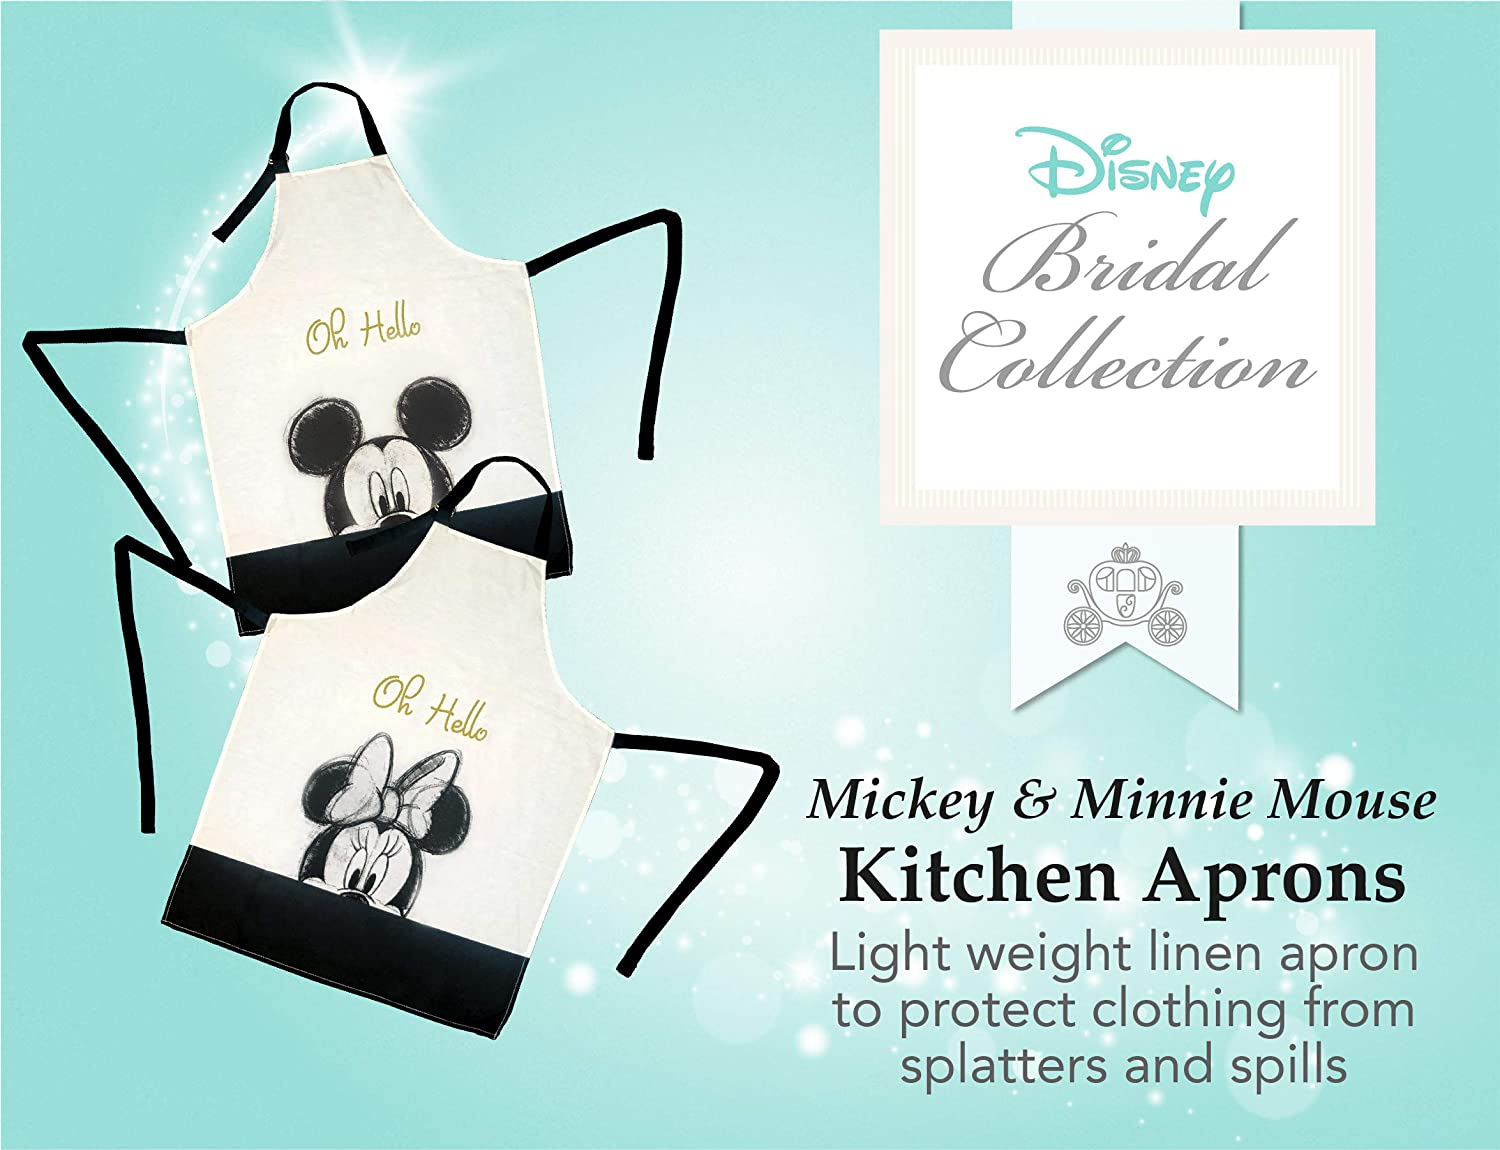 Minnie Mouse Face Keep Cute and Comfortable During All Your Cooking Experiences Clean Best Brands Disney Cotton Apron Gray